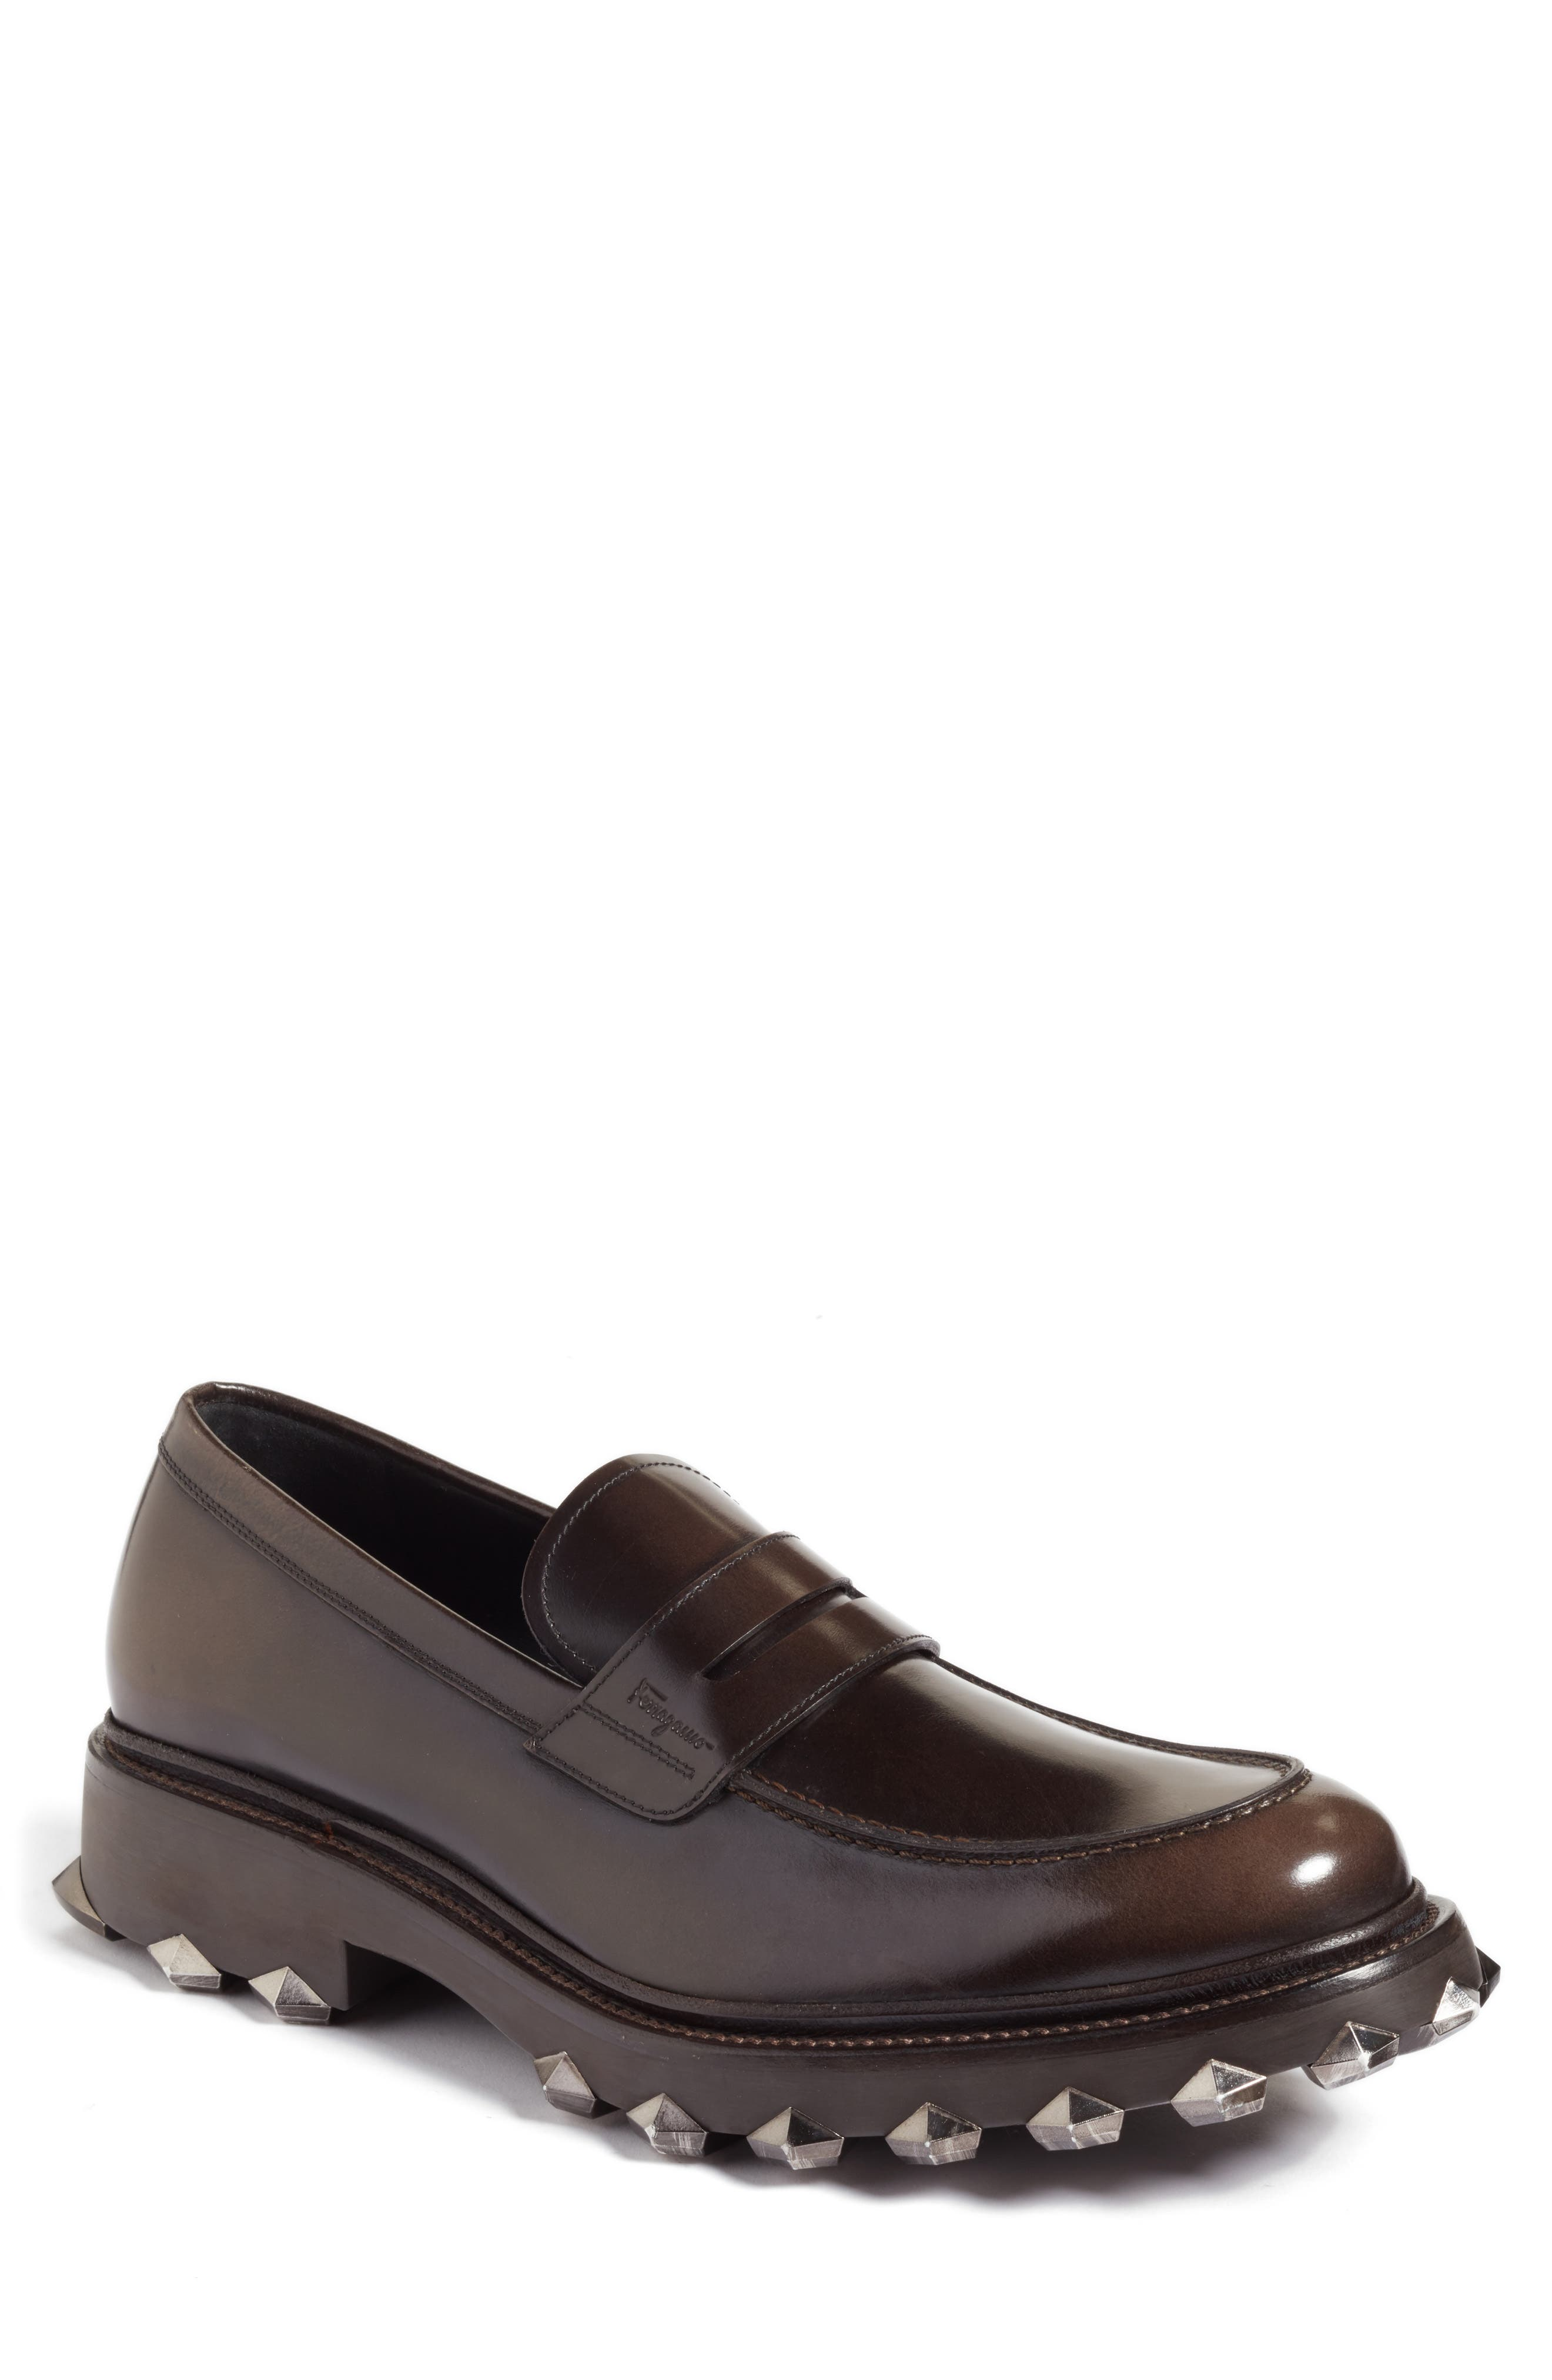 Main Image - Salvatore Ferragamo Penny Loafer (Men)